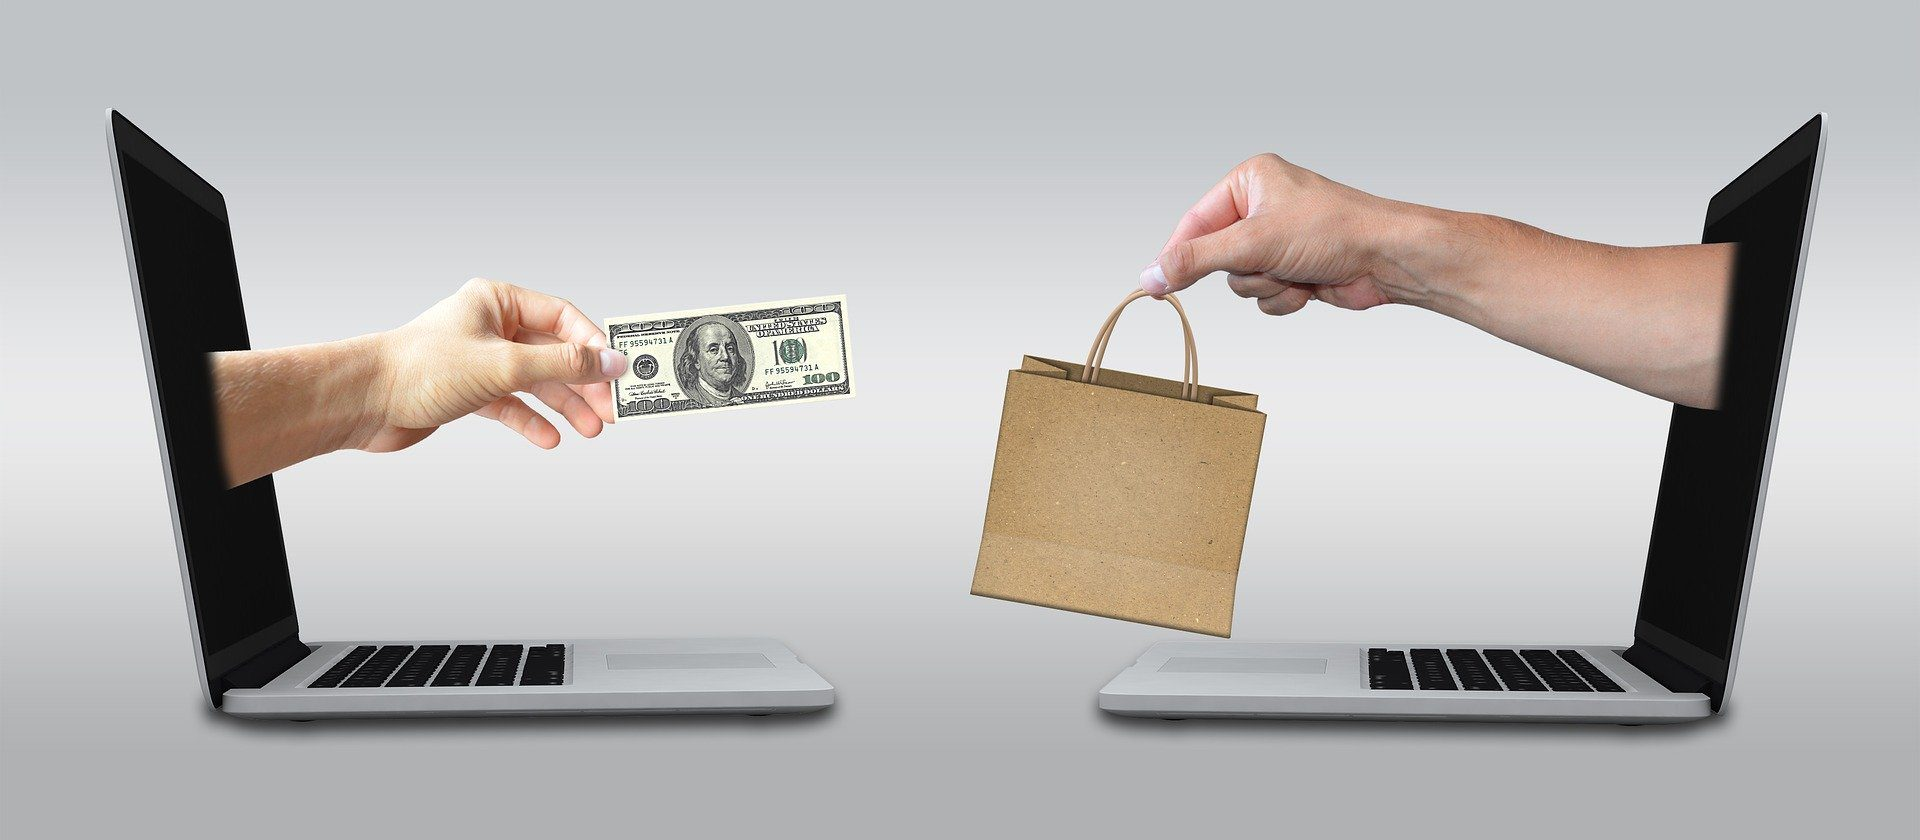 hands reaching out from two laptops exchanging money and a bag